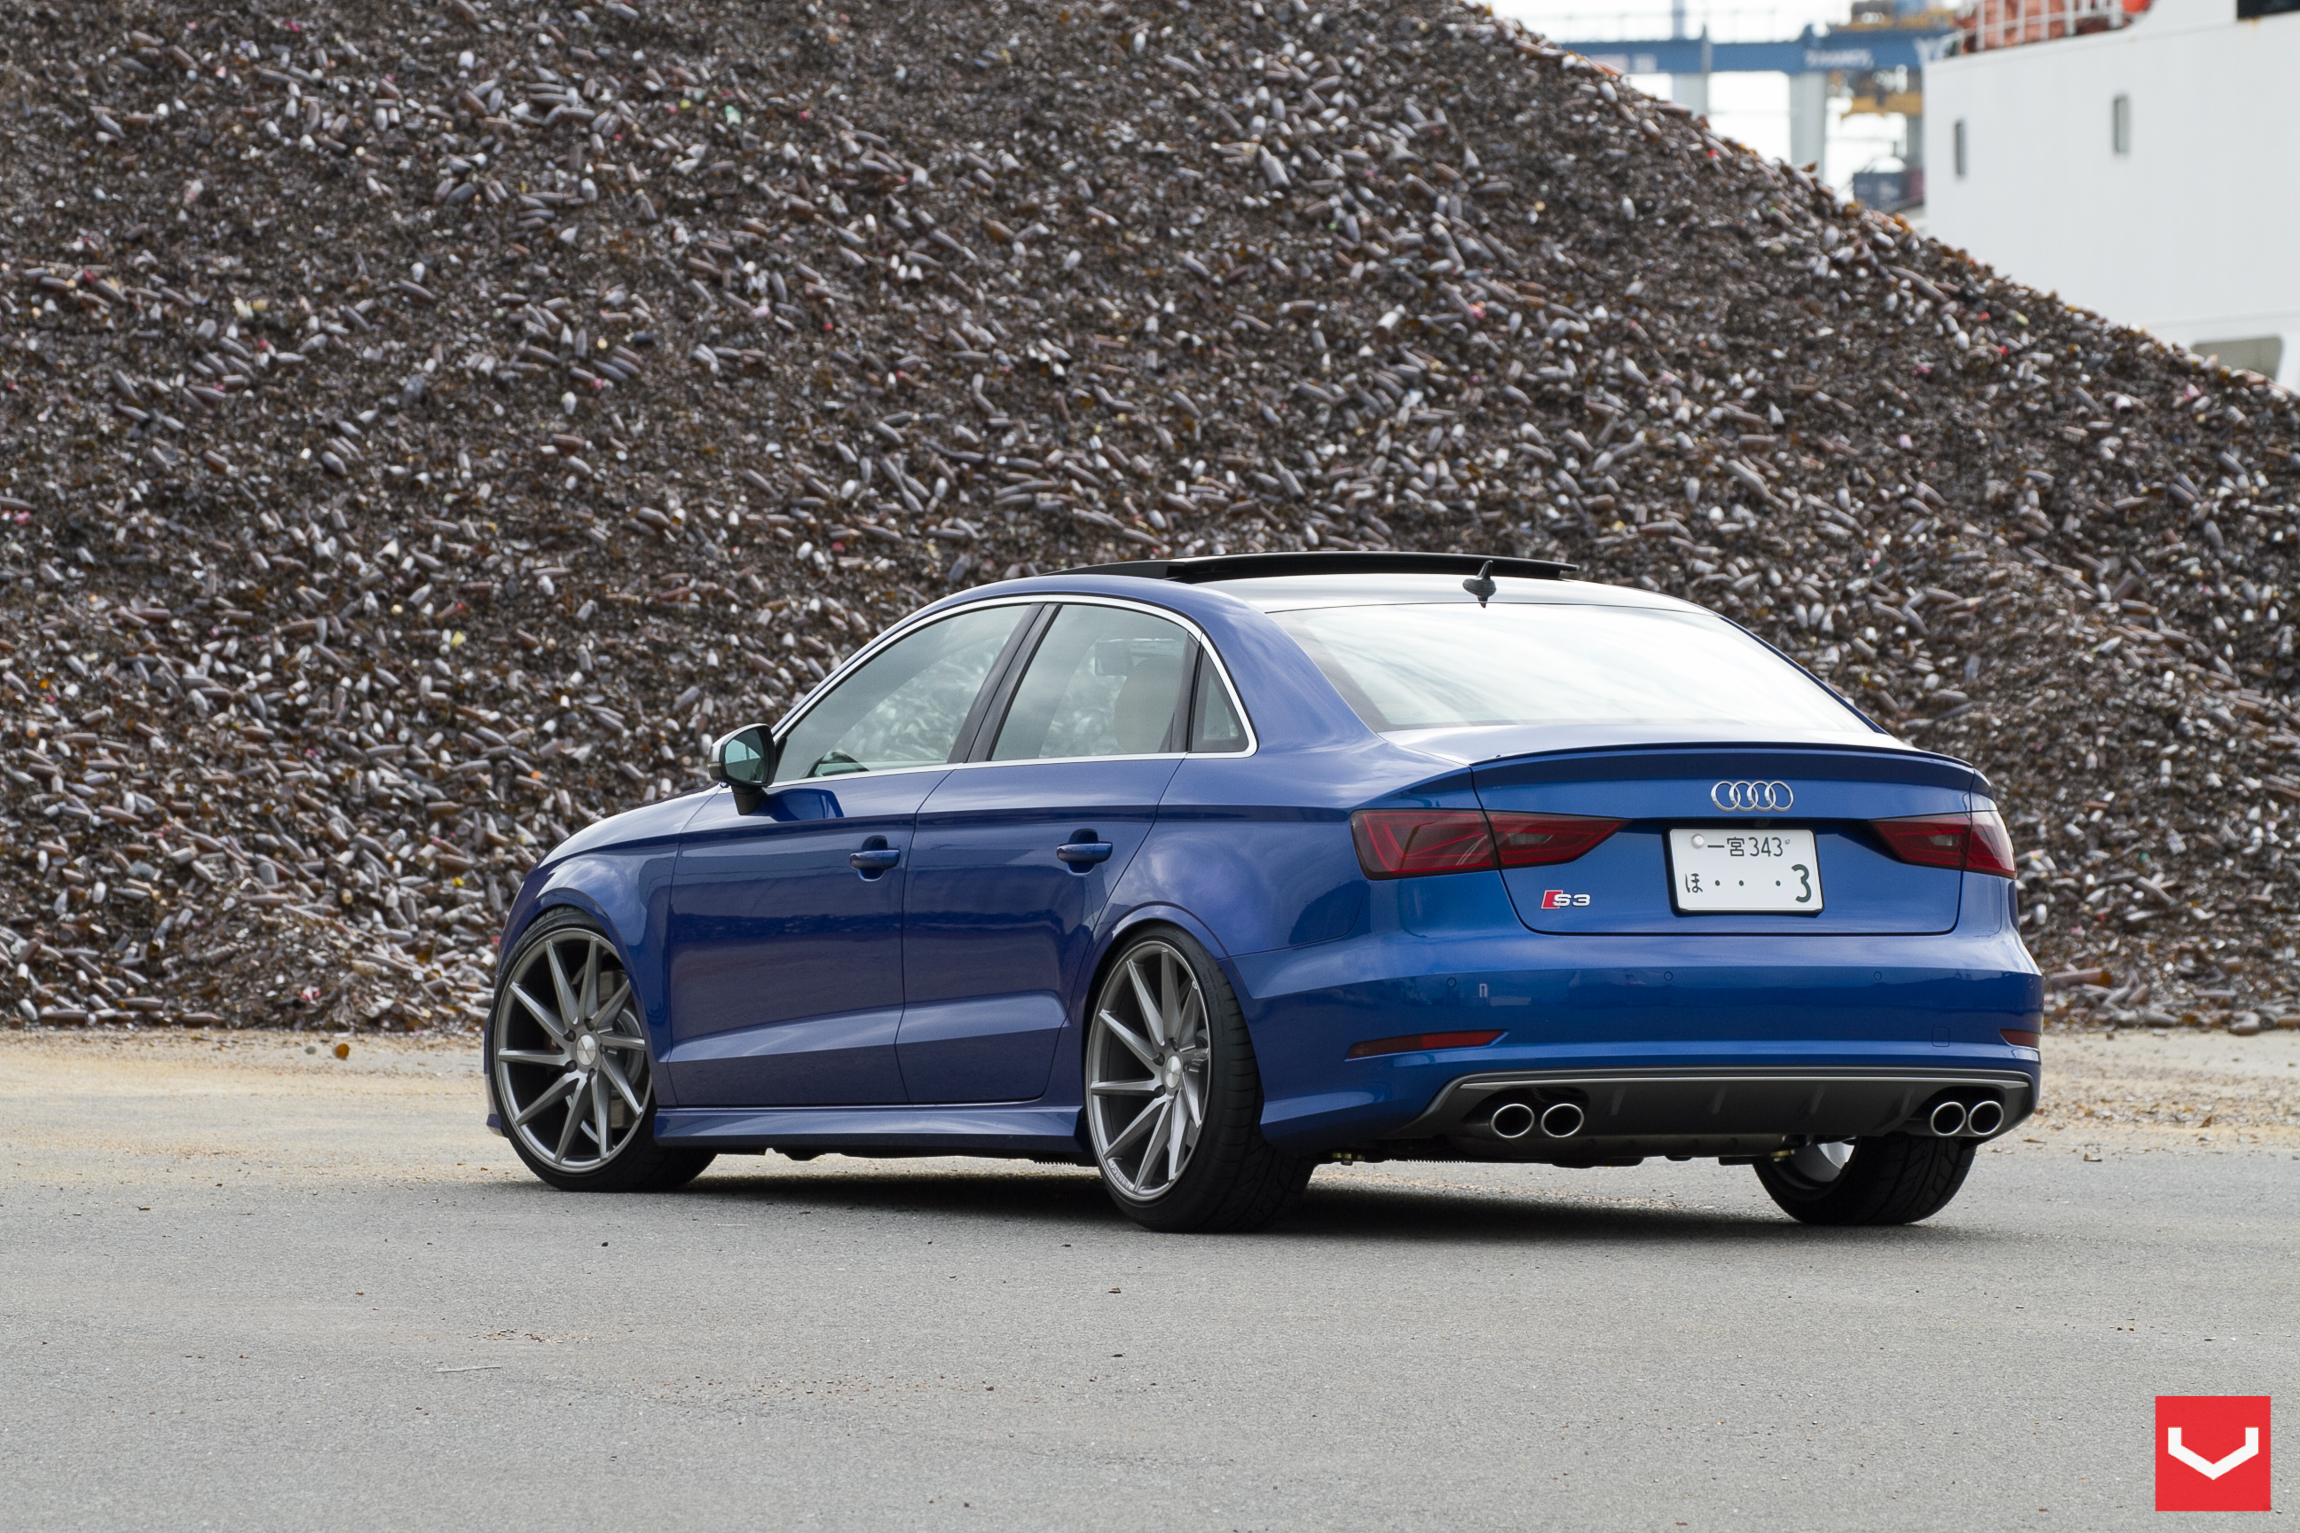 Manual Audi S3 Sedan Is Faster Than 2015 Subaru Wrx Sti Blue With White Rims Stanced On Vossen Wheels